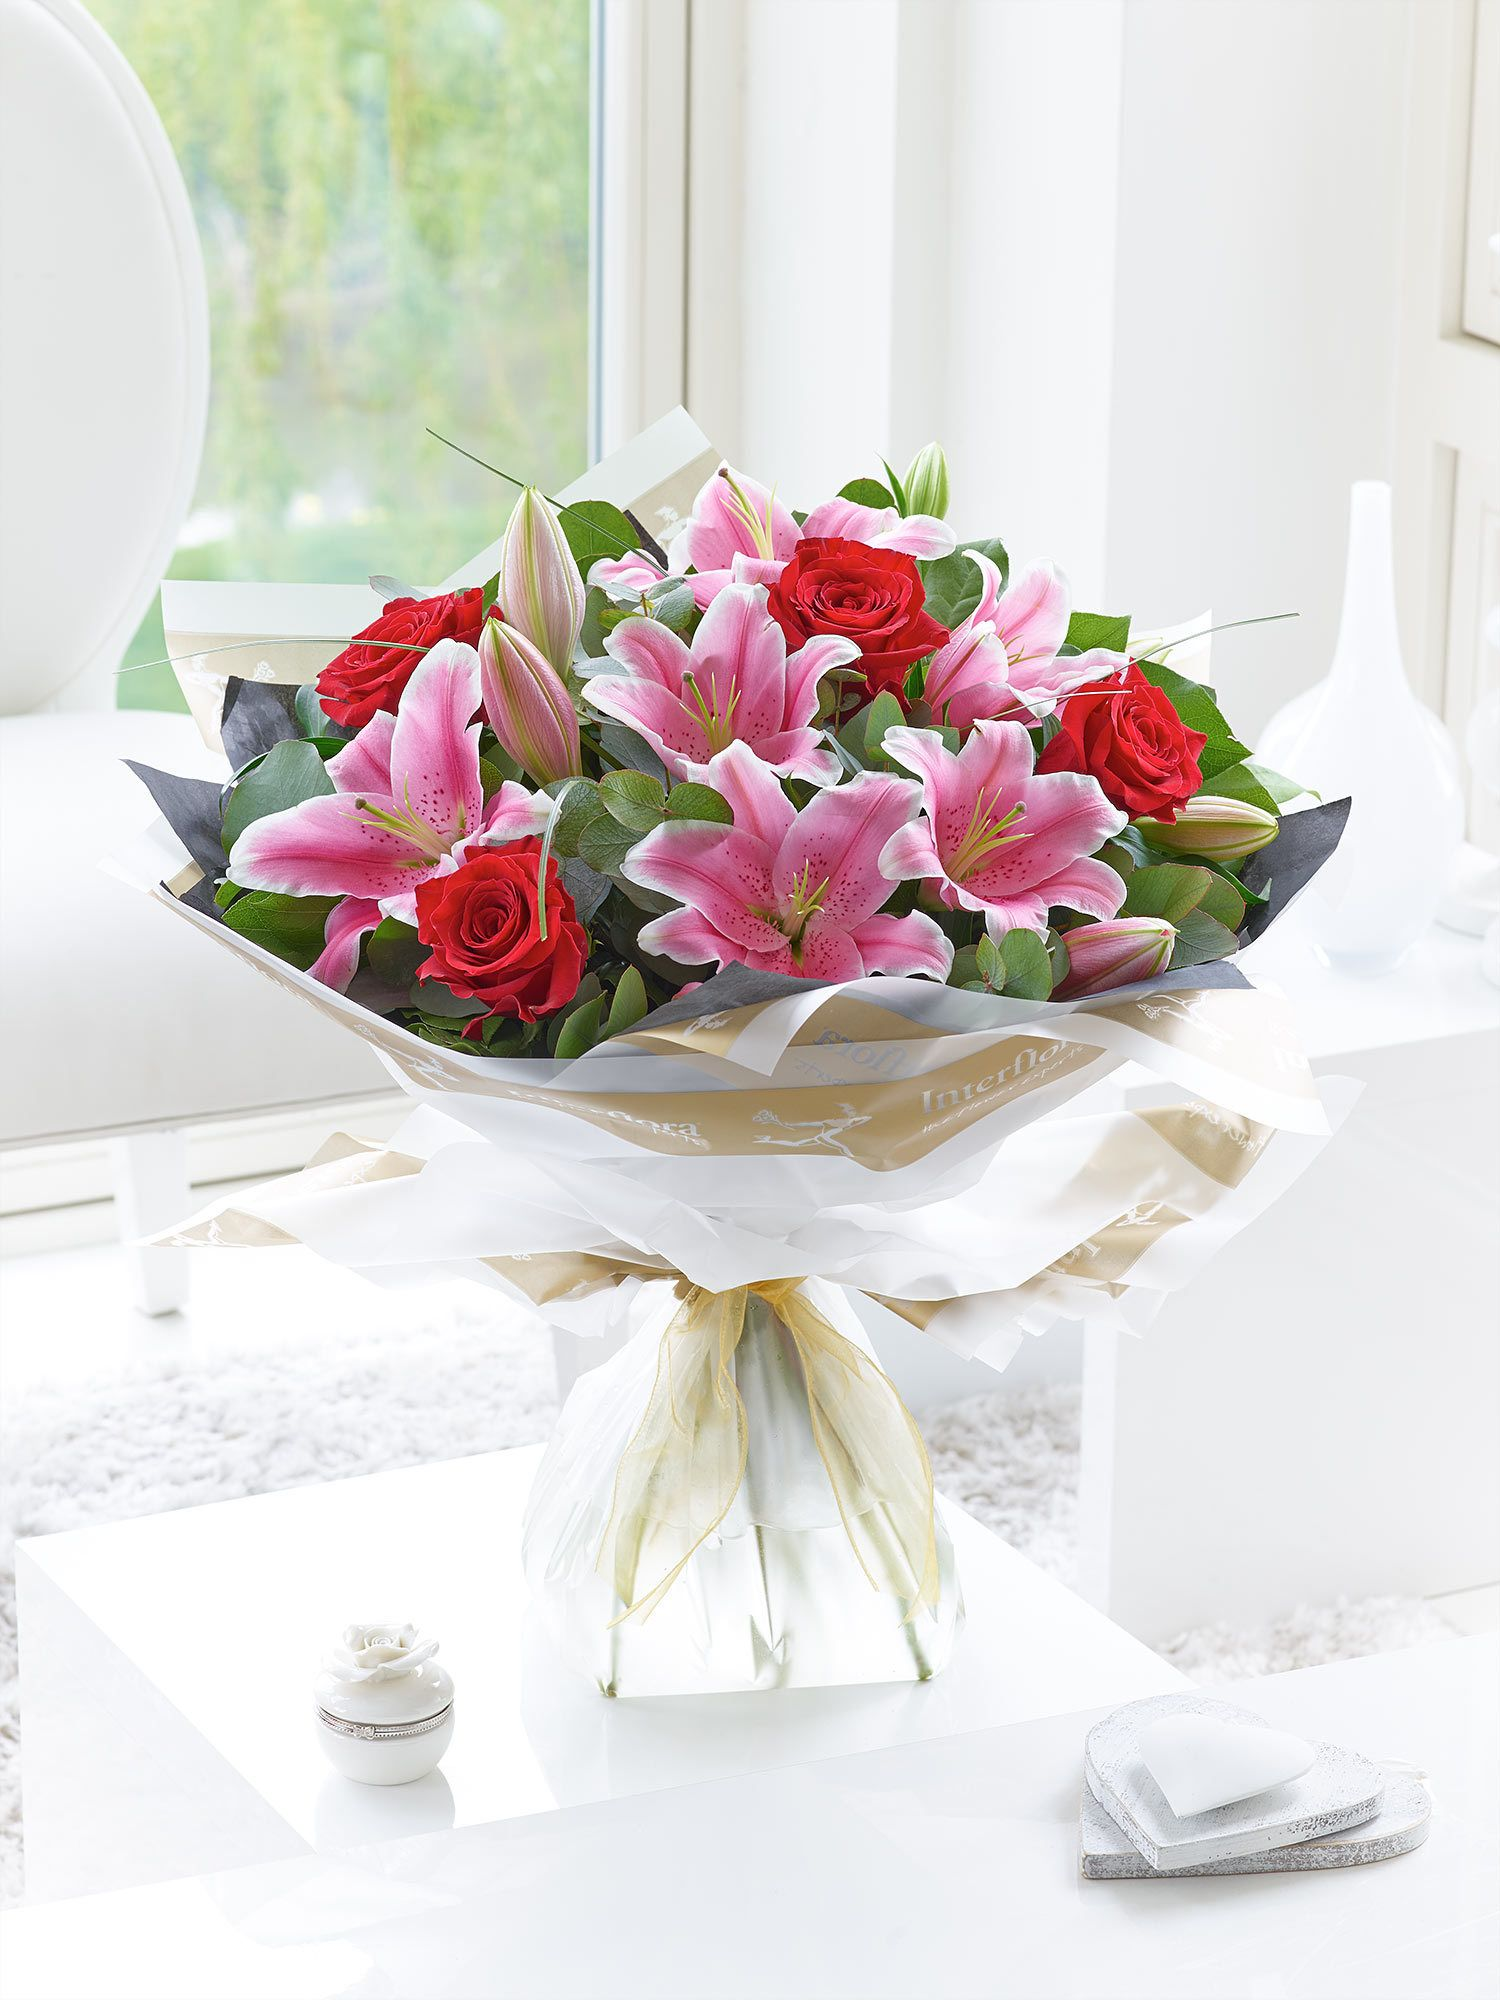 Roses and lilies are always a favourite combination, and